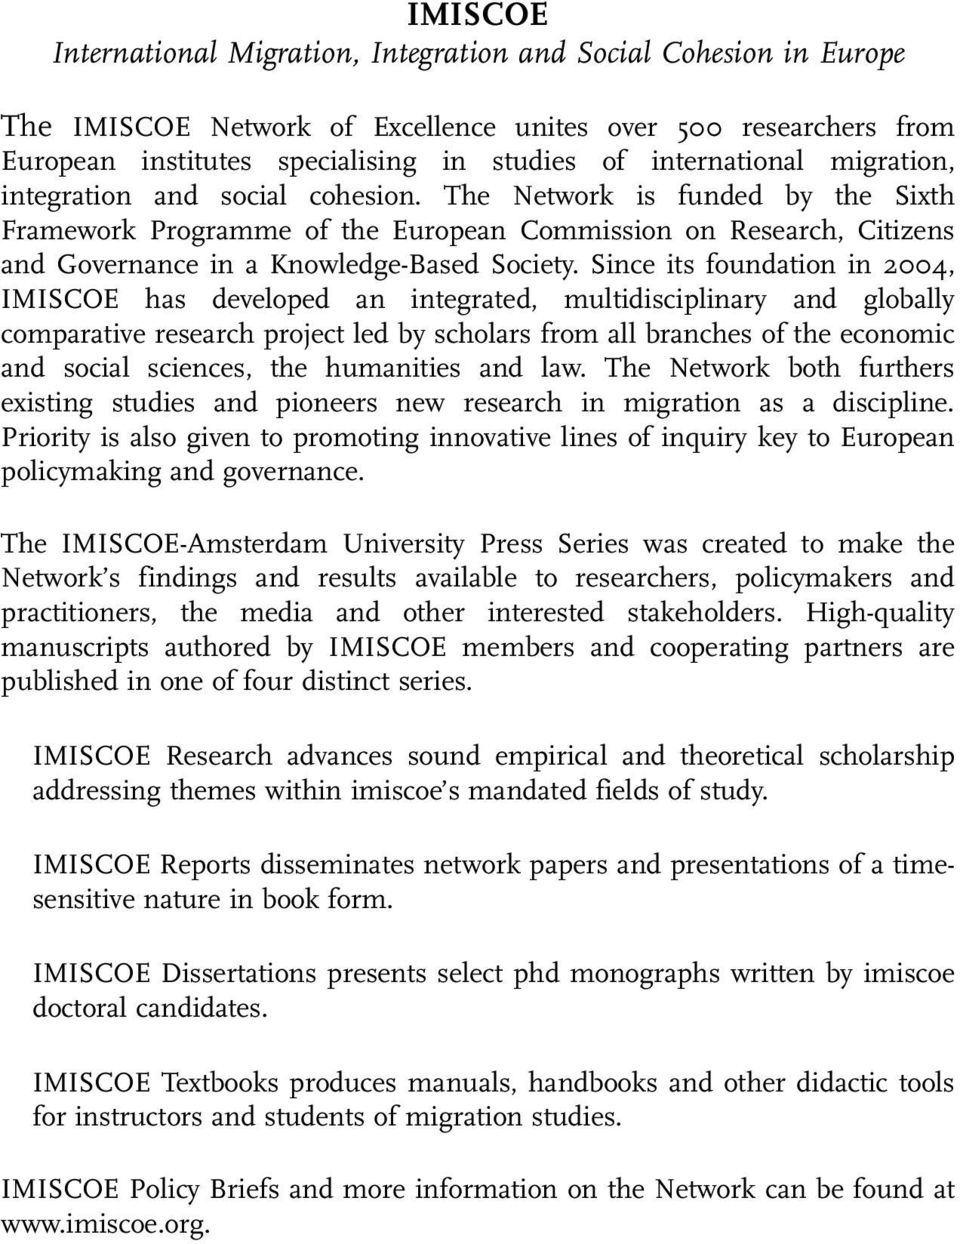 The Network is funded by the Sixth Framework Programme of the European Commission on Research, Citizens and Governance in a Knowledge-Based Society.